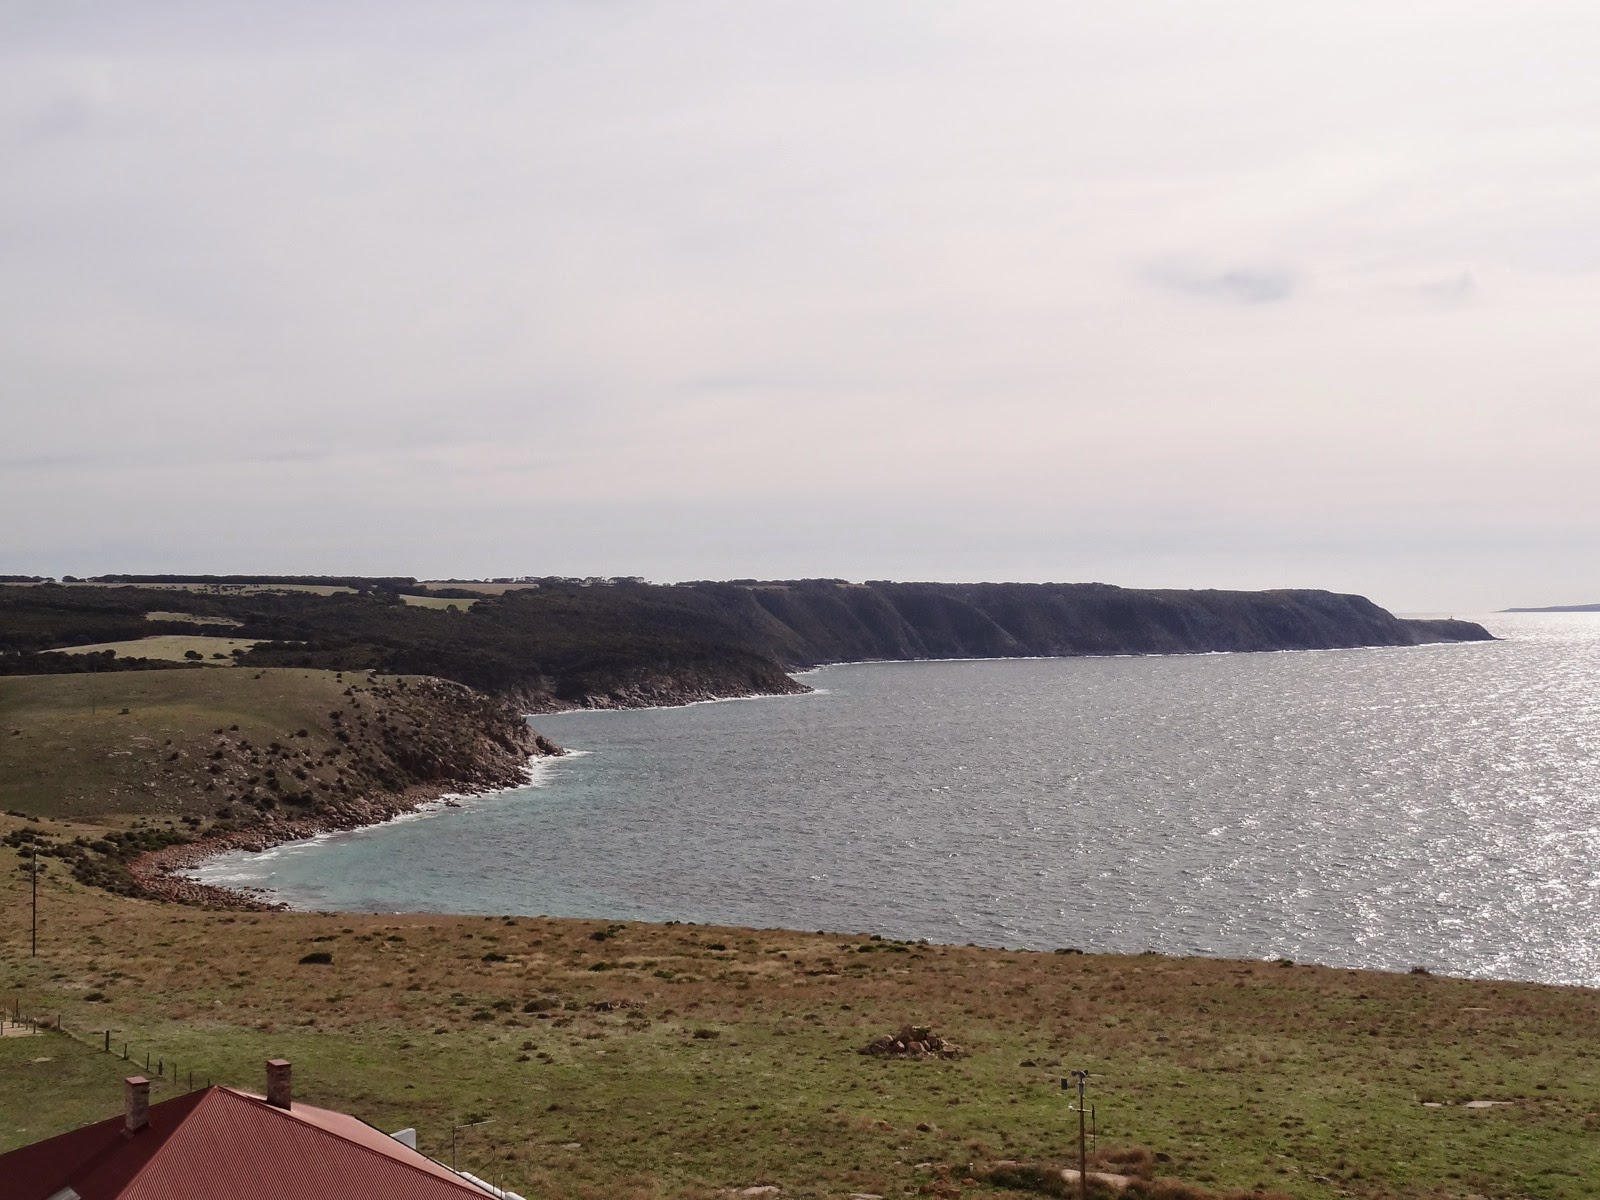 looking towards Cape St Albans